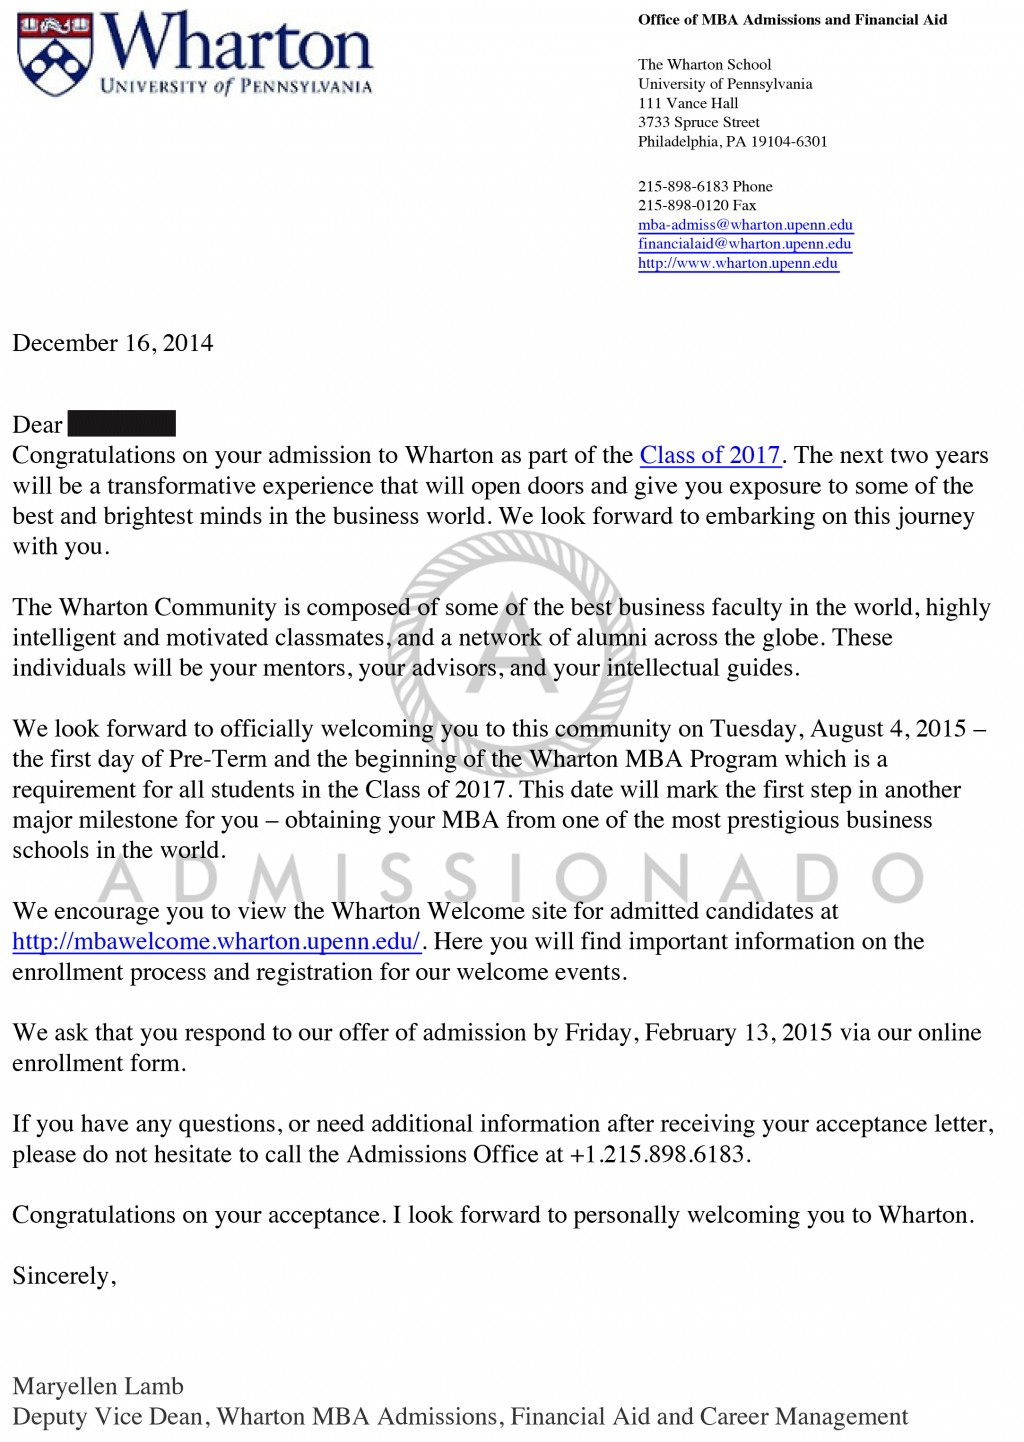 002 Accepted Stanford Application Essay Custom Paper Help Pin Acceptance Letter On Pint College Essays That Were Upenn Remarkable Prompts Supplement Large